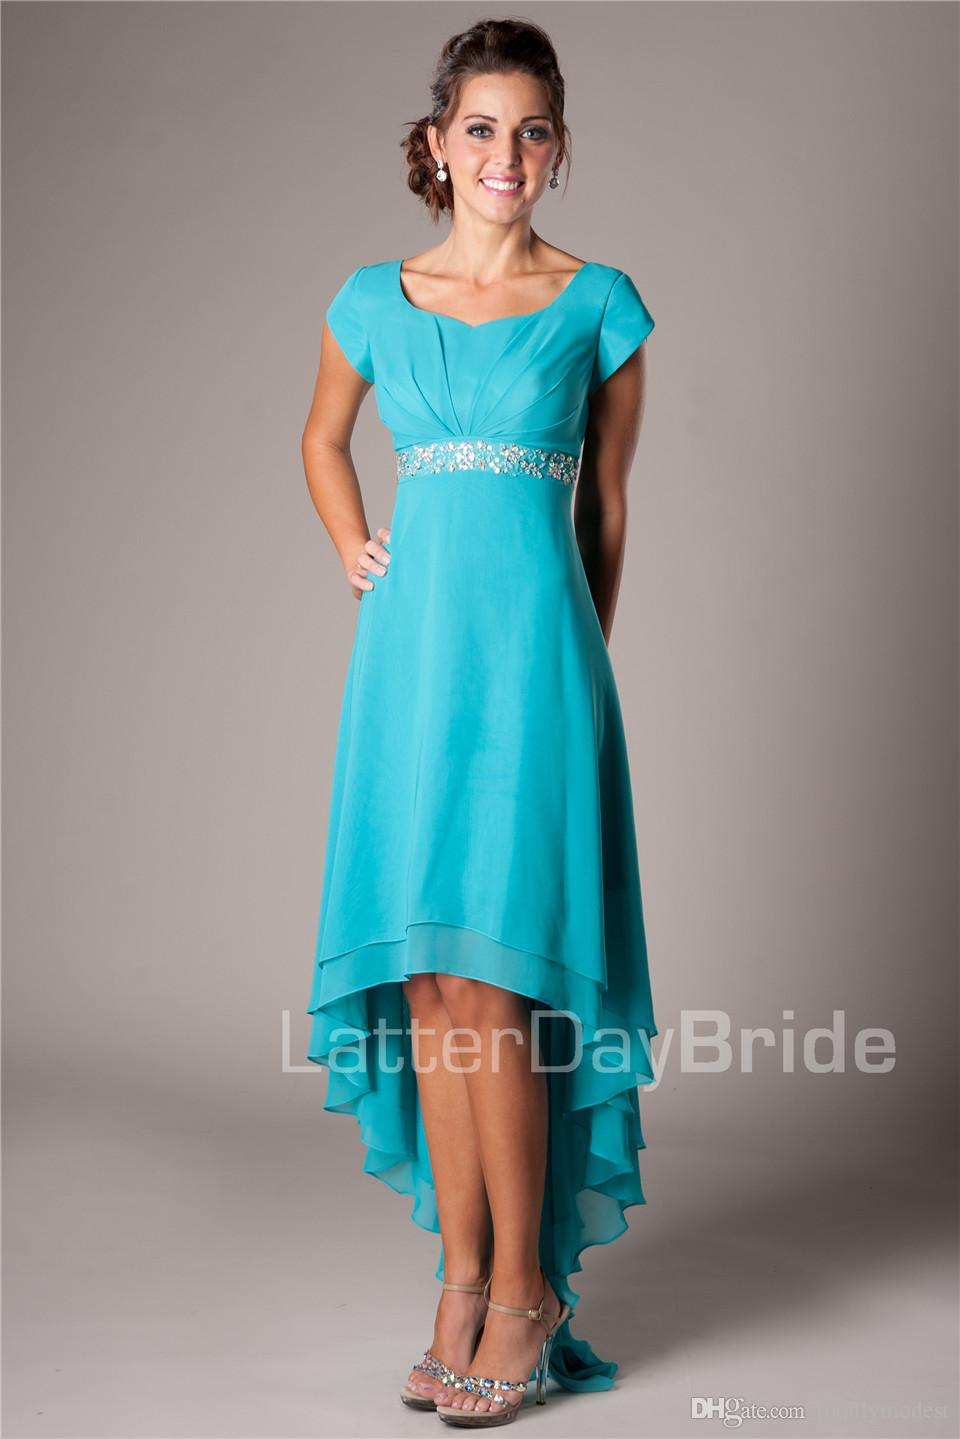 Summer Teal High Low Chiffon Beach Modest Bridesmaid Dresses Cap Sleeves Short Front Long Back Maids of Honor Dresses Wedding Guests Dresses